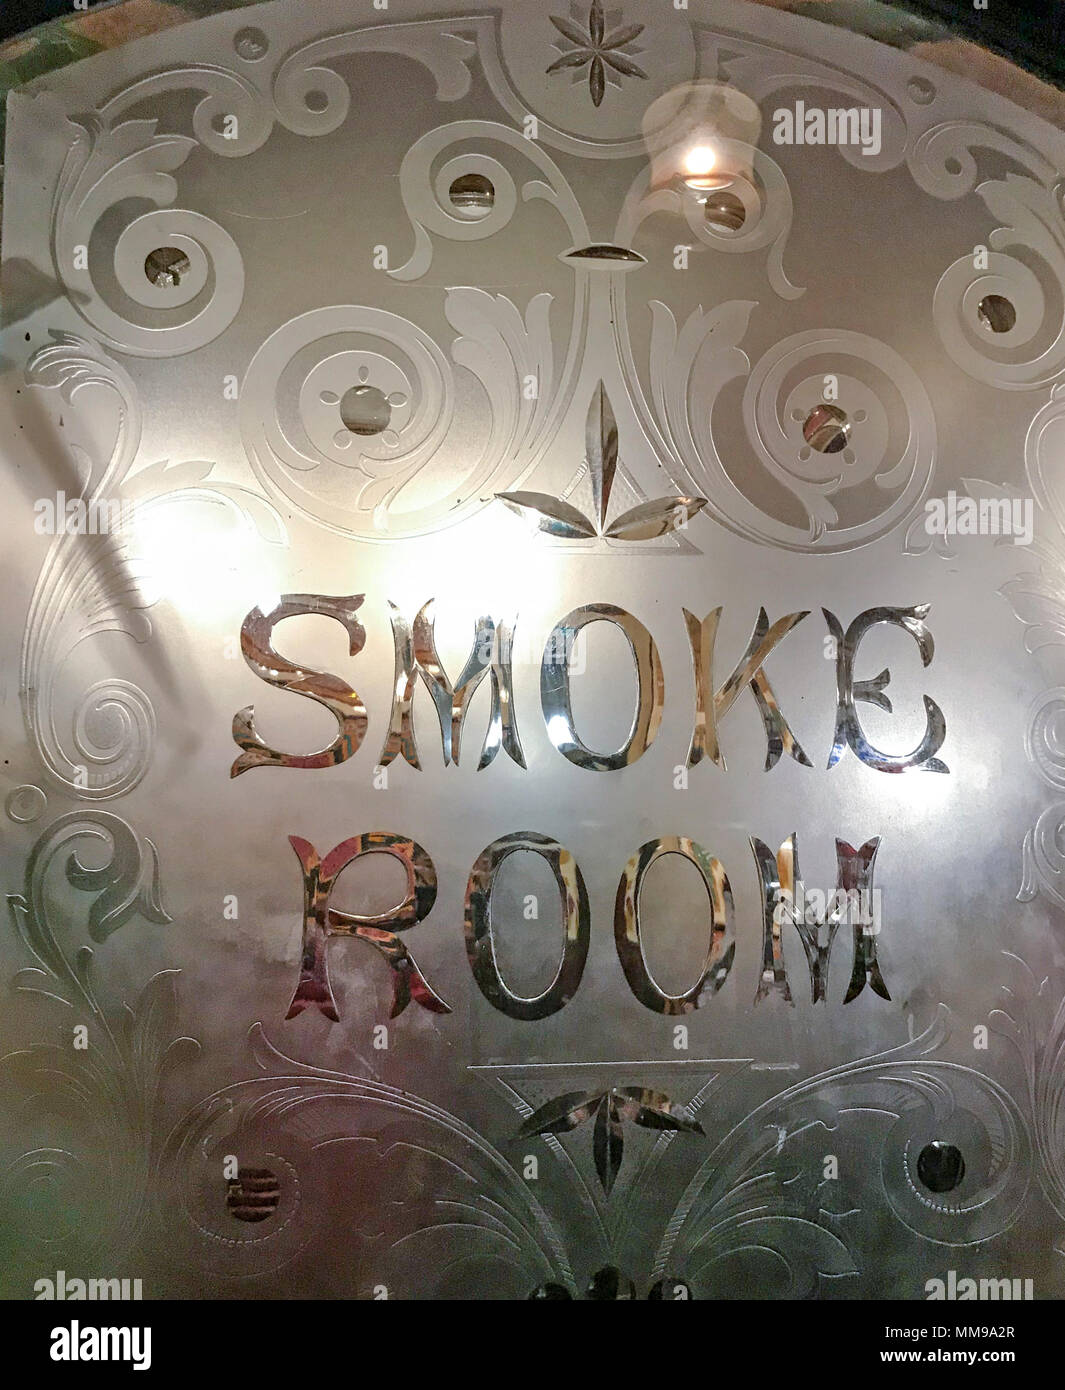 Smoke room door, Bartons Arms, Aston, Birmingham, B6 4UP, B6 - Stock Image